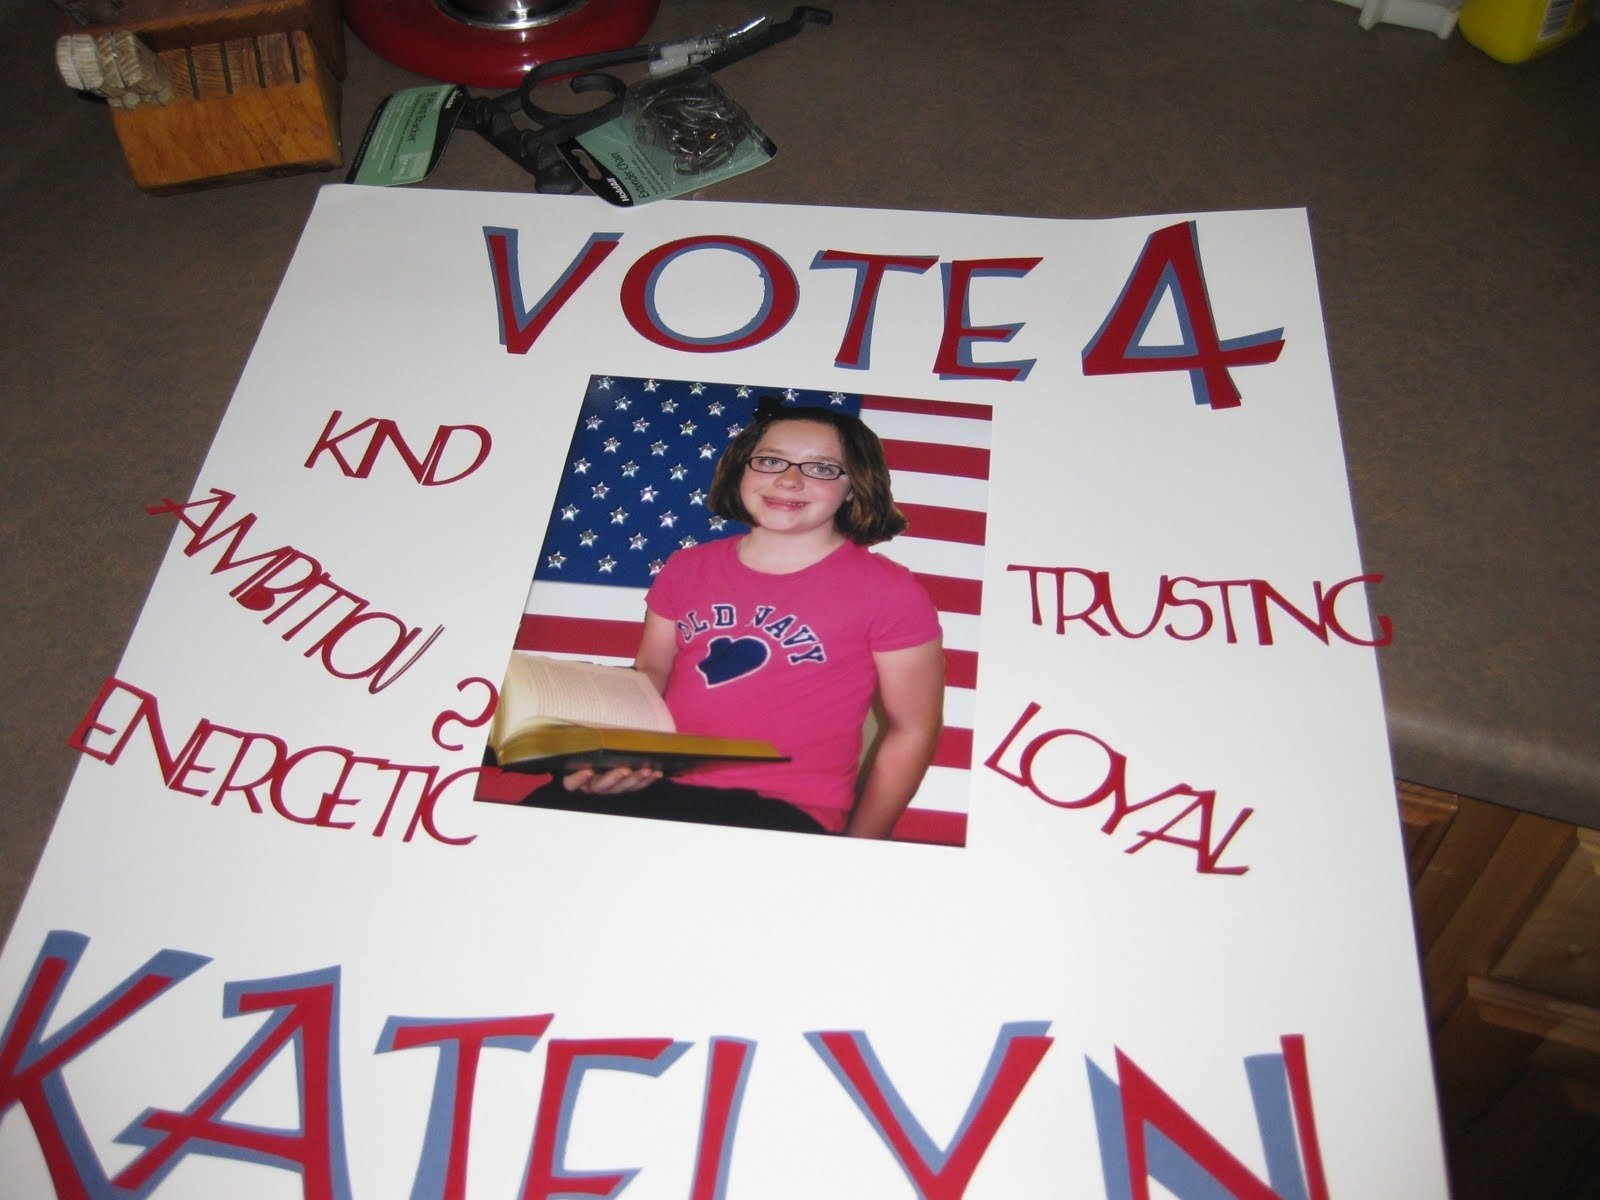 10 Stylish High School Student Council Ideas image result for highschool election handouts ian pinterest 1 2020